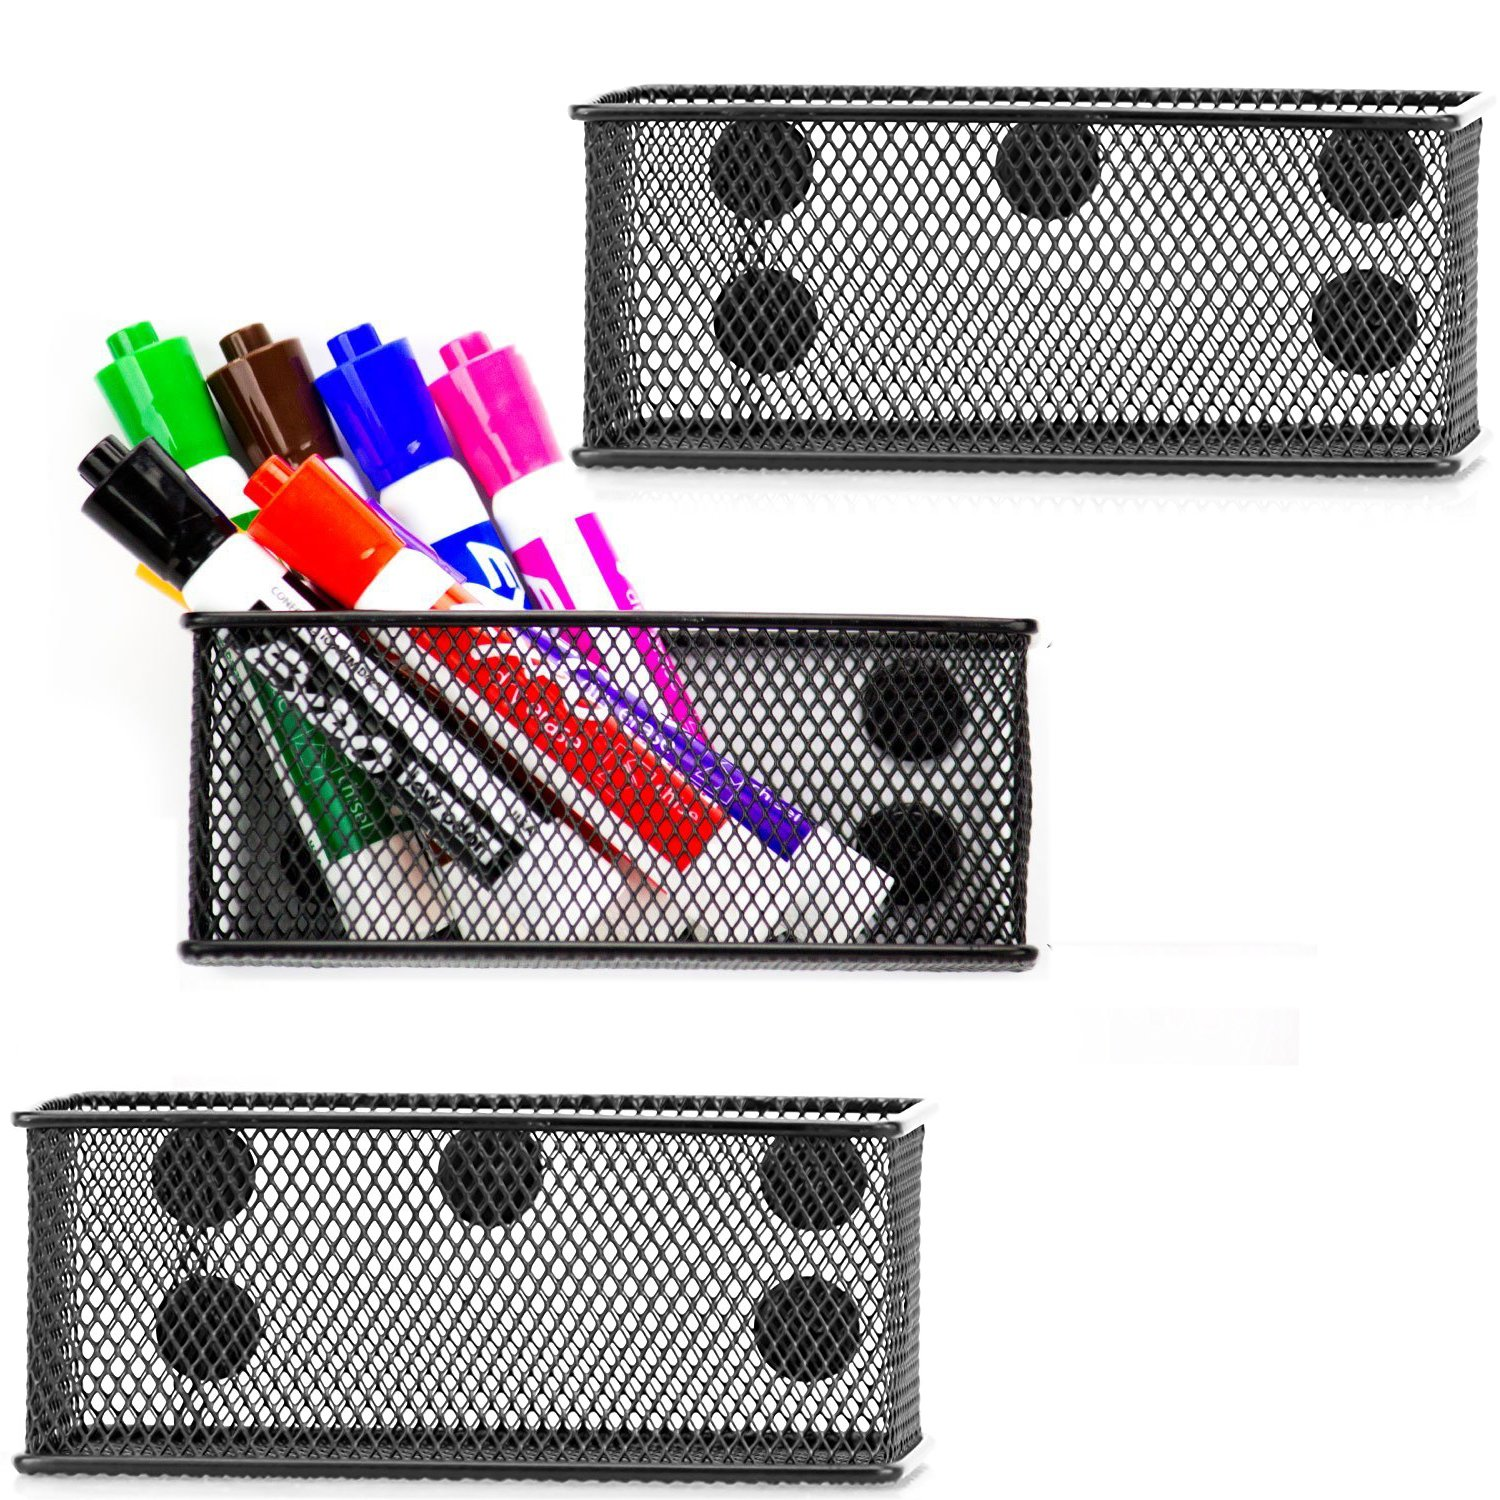 Easepres Wire Mesh Magnetic Organizer Set of 3 - Black Magnetic Storage Baskets with Strong Magnets Perfect for Whiteboard, Refrigerator and Locker Accessories